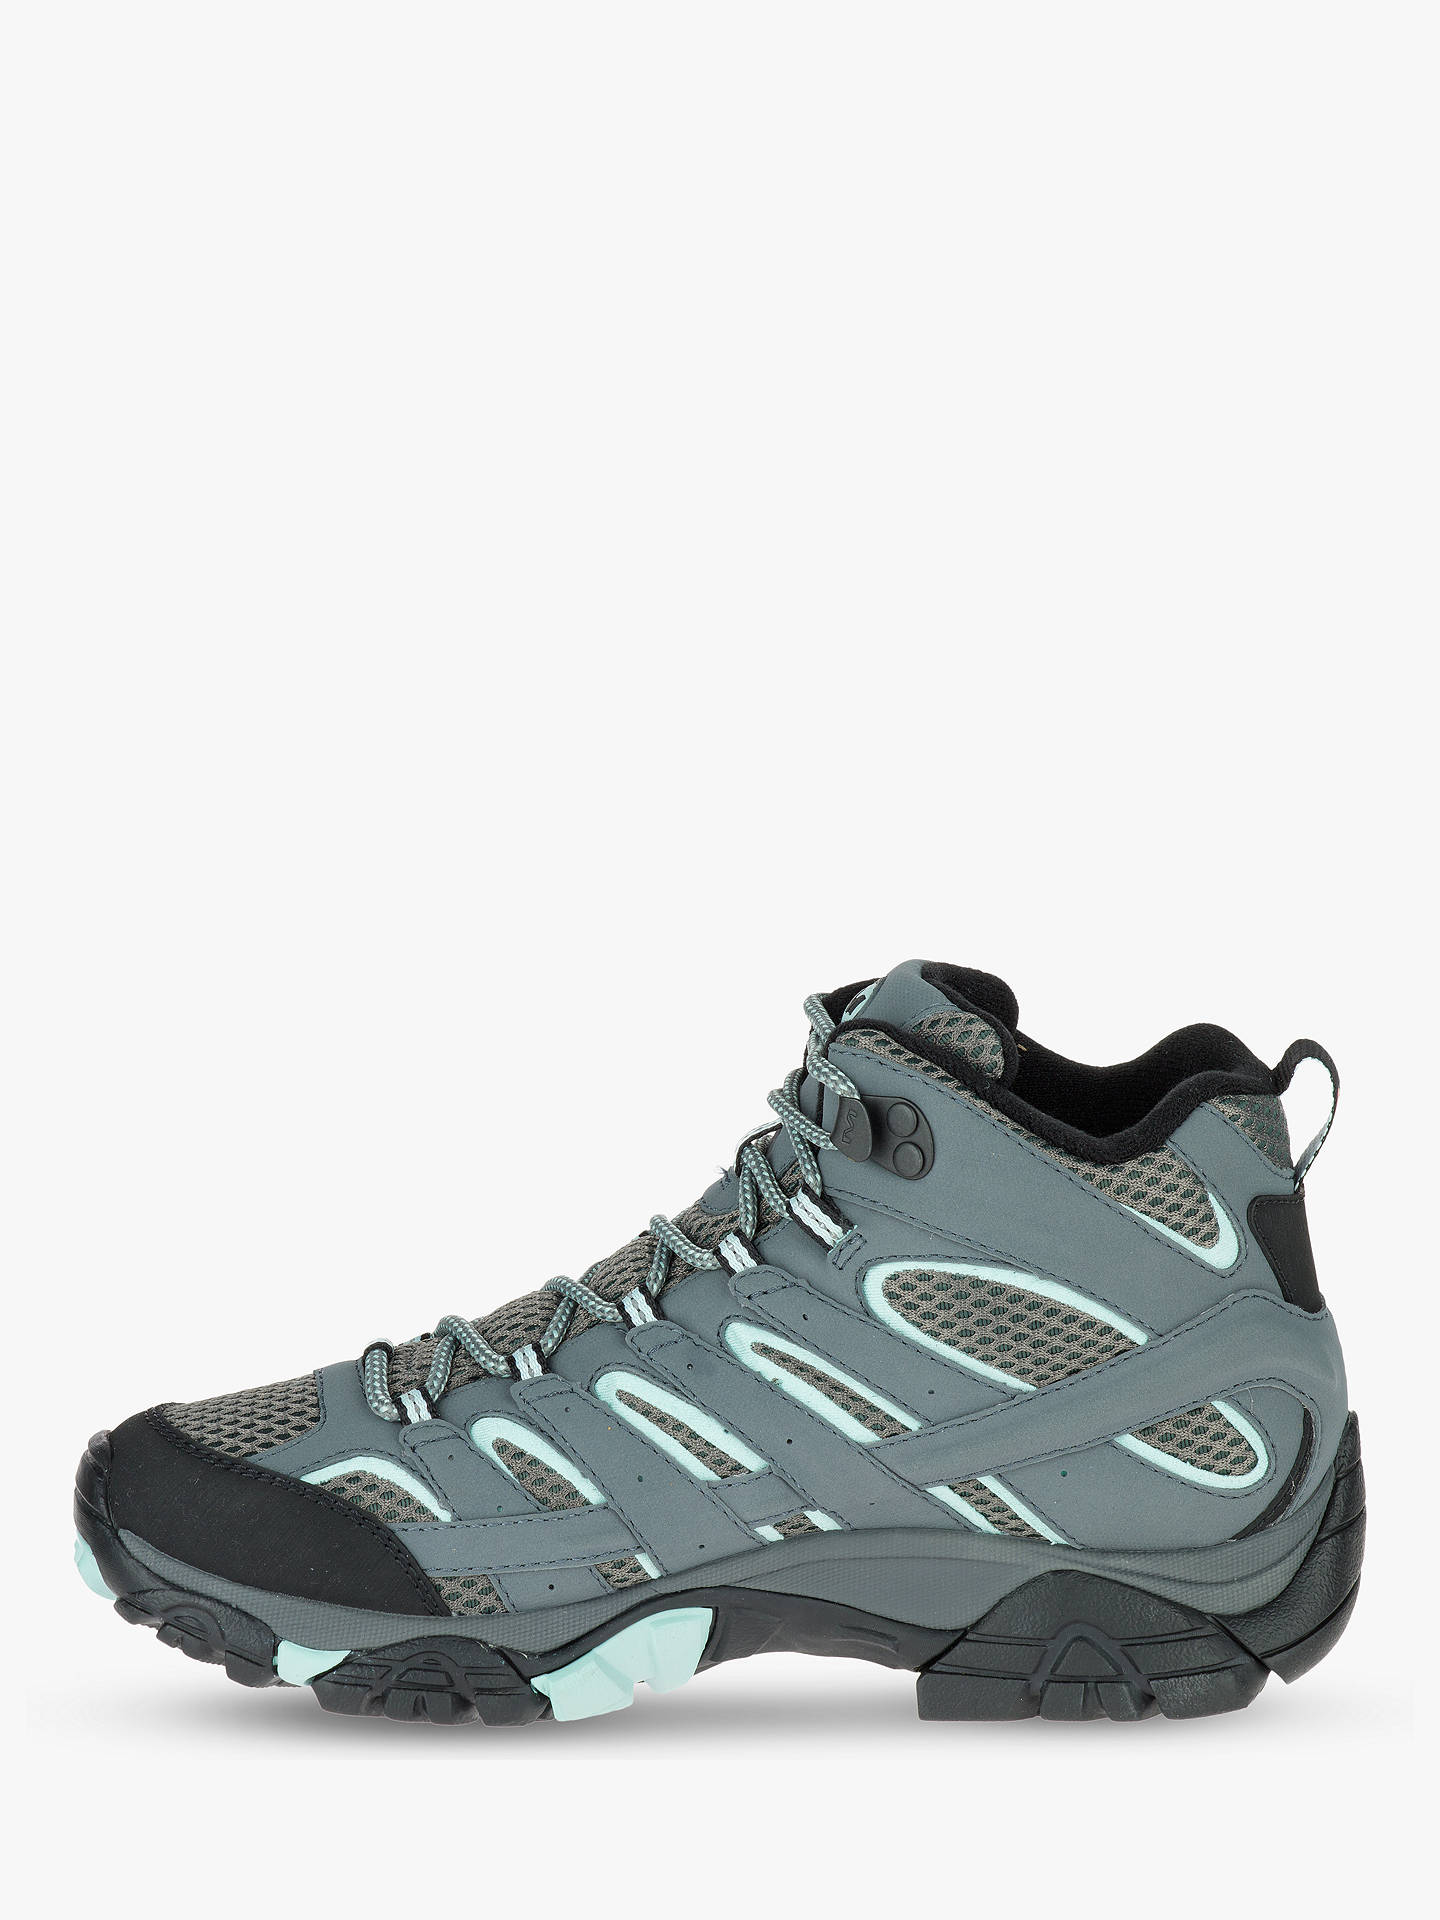 37838be9472 Merrell MOAB 2 Mid GORE-TEX Women's Hiking Boots, Sage